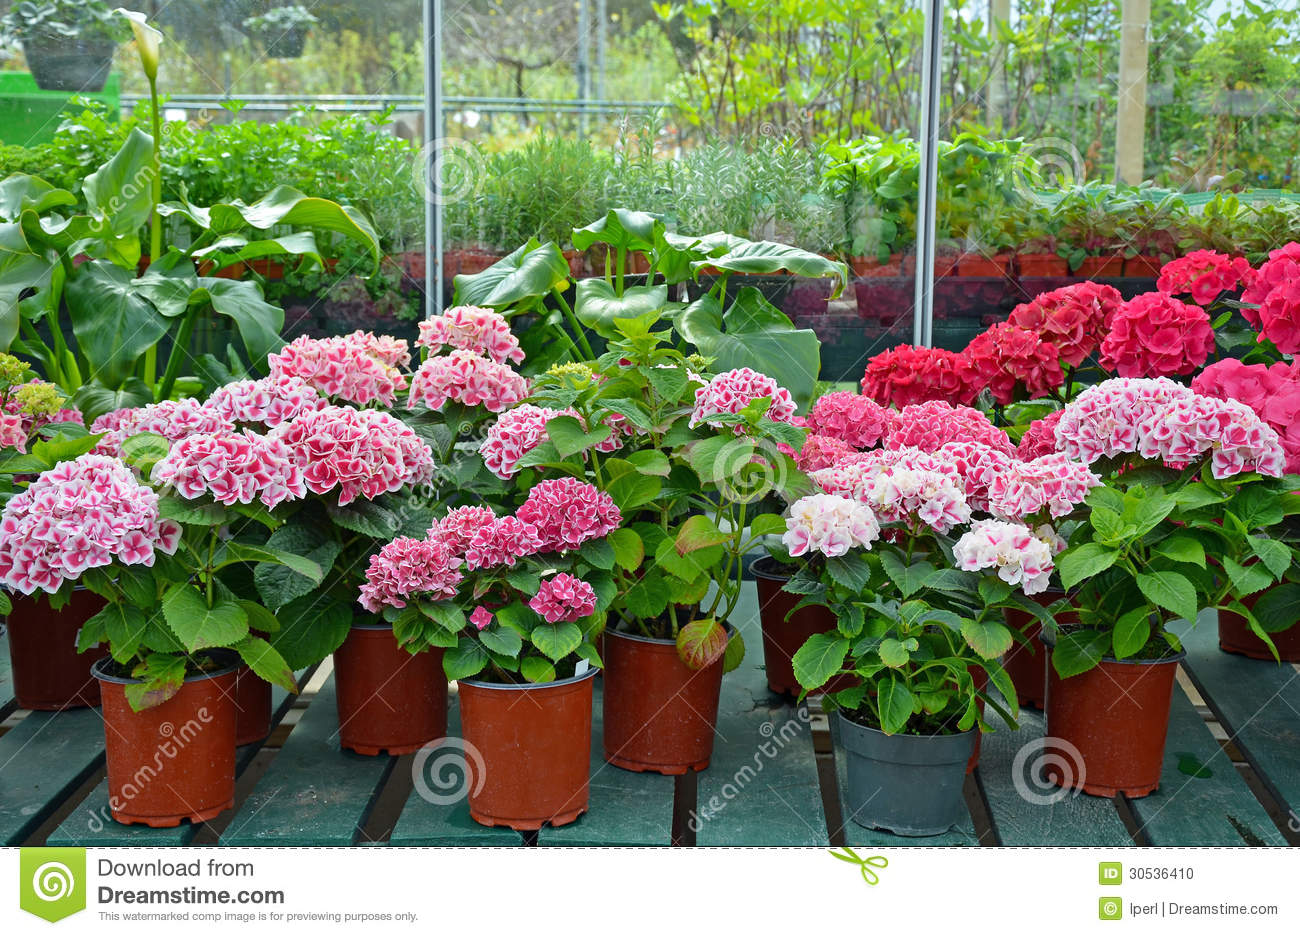 Beautiful pink flowers in the garden stock photography image - Hydrangeas In Garden Shop Stock Photo Image 30536410